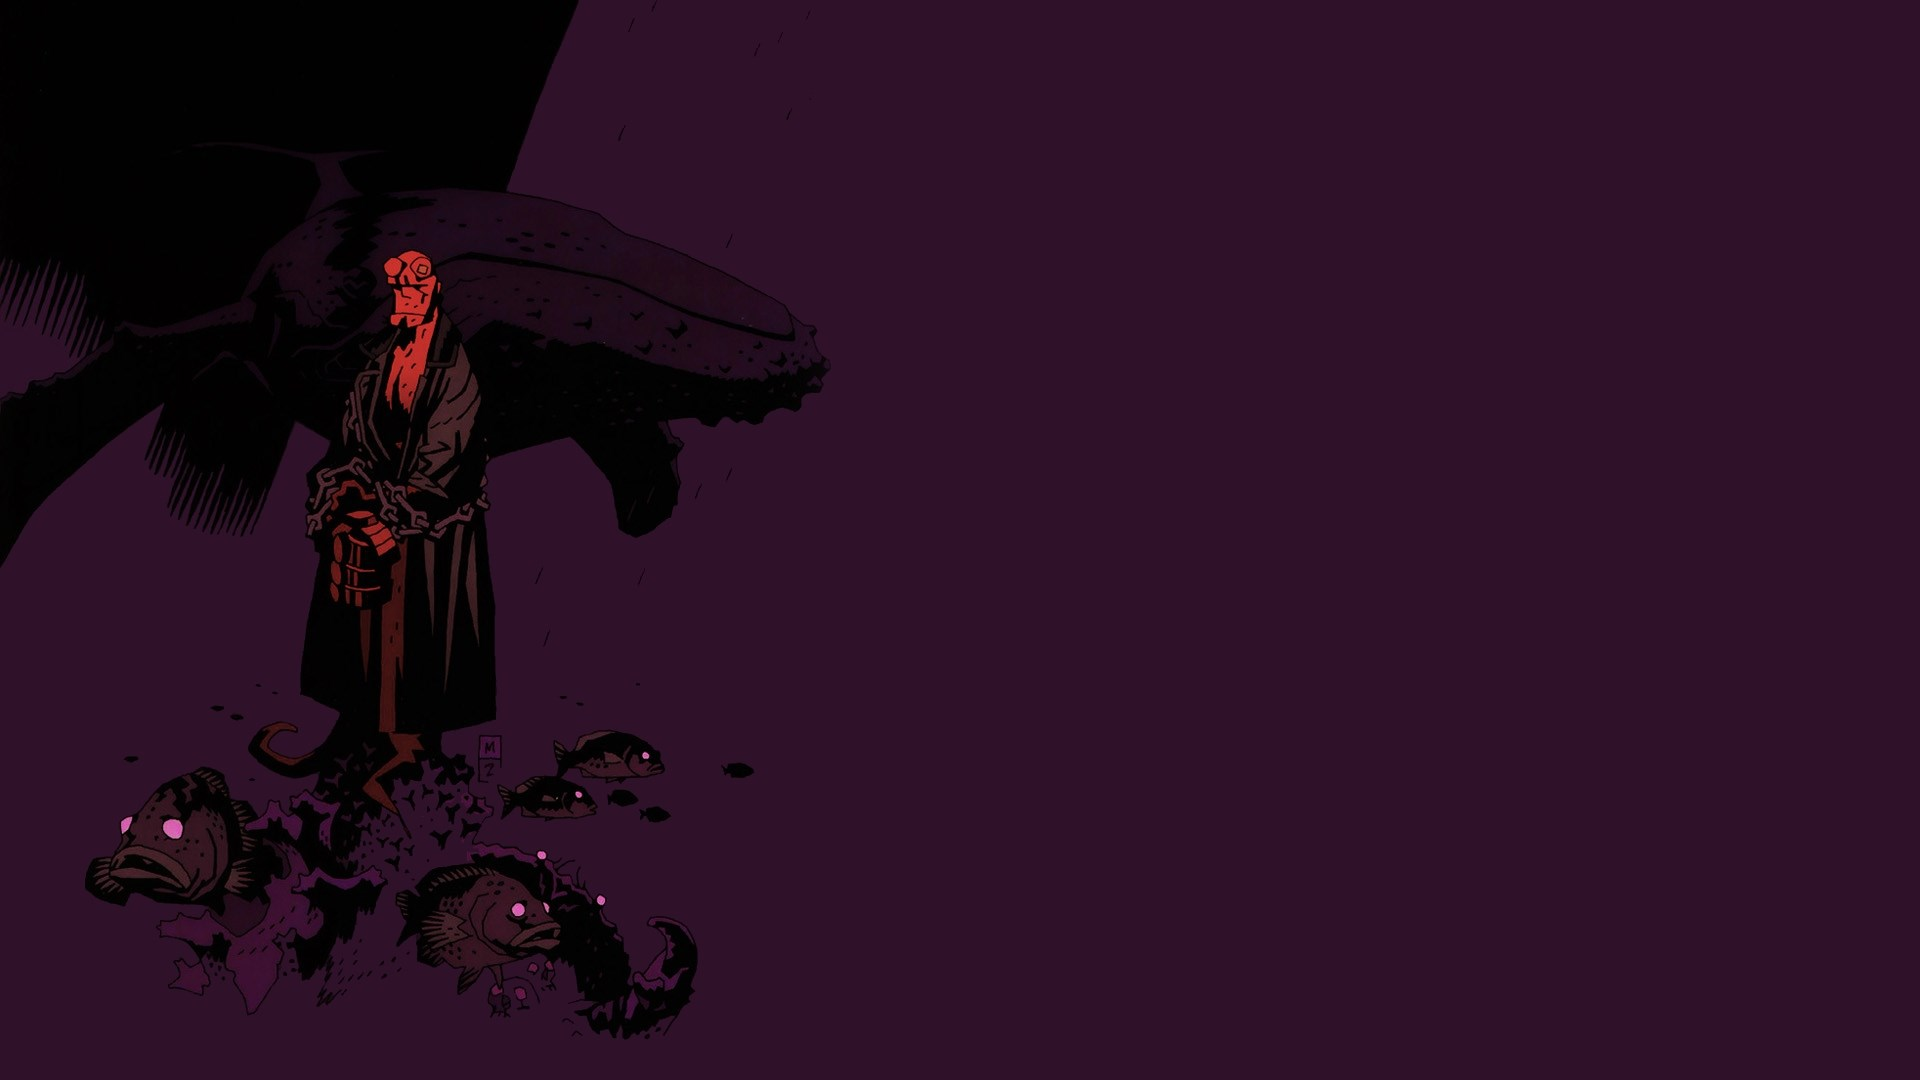 1920x1080-free-hellboy-wallpaper-wpc5801048